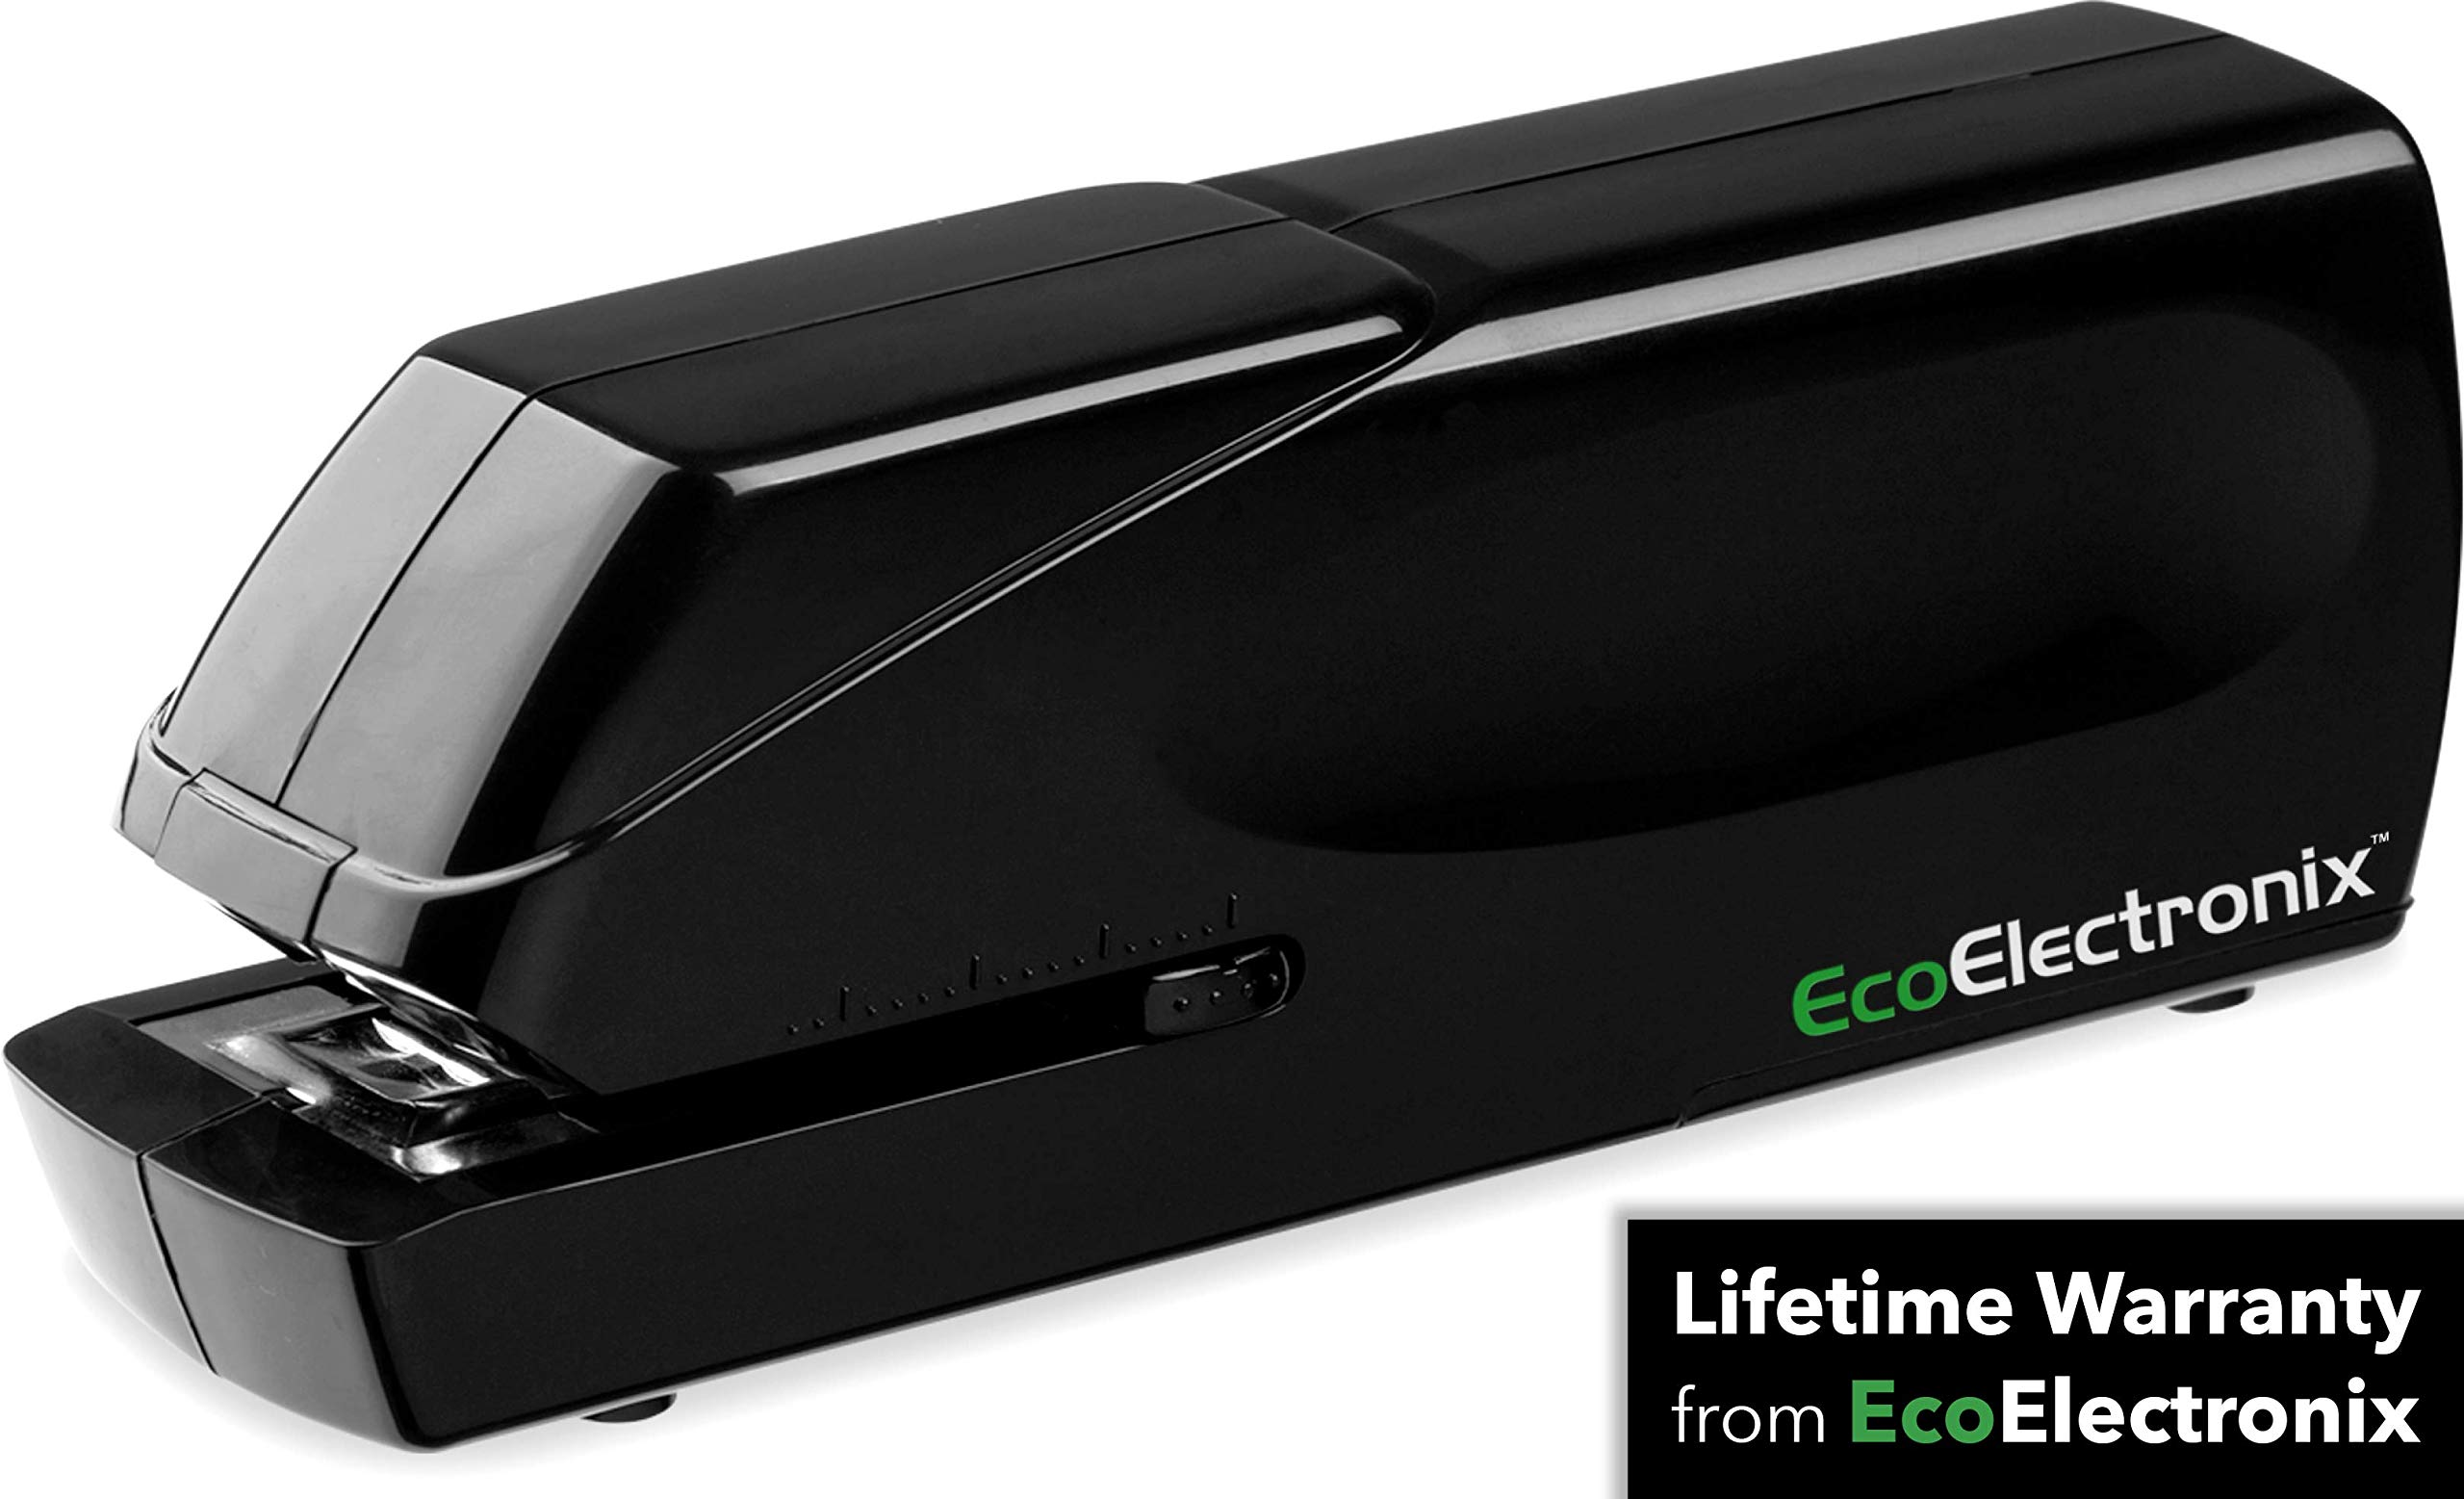 EX-25 Automatic Heavy Duty Electric Stapler - Includes Staples, AC Power Cable + Extended Warranty by EcoElectronix - Jam-Free 25 Sheet Full-Strip Staple Capacity, For Professional and Home Office Use